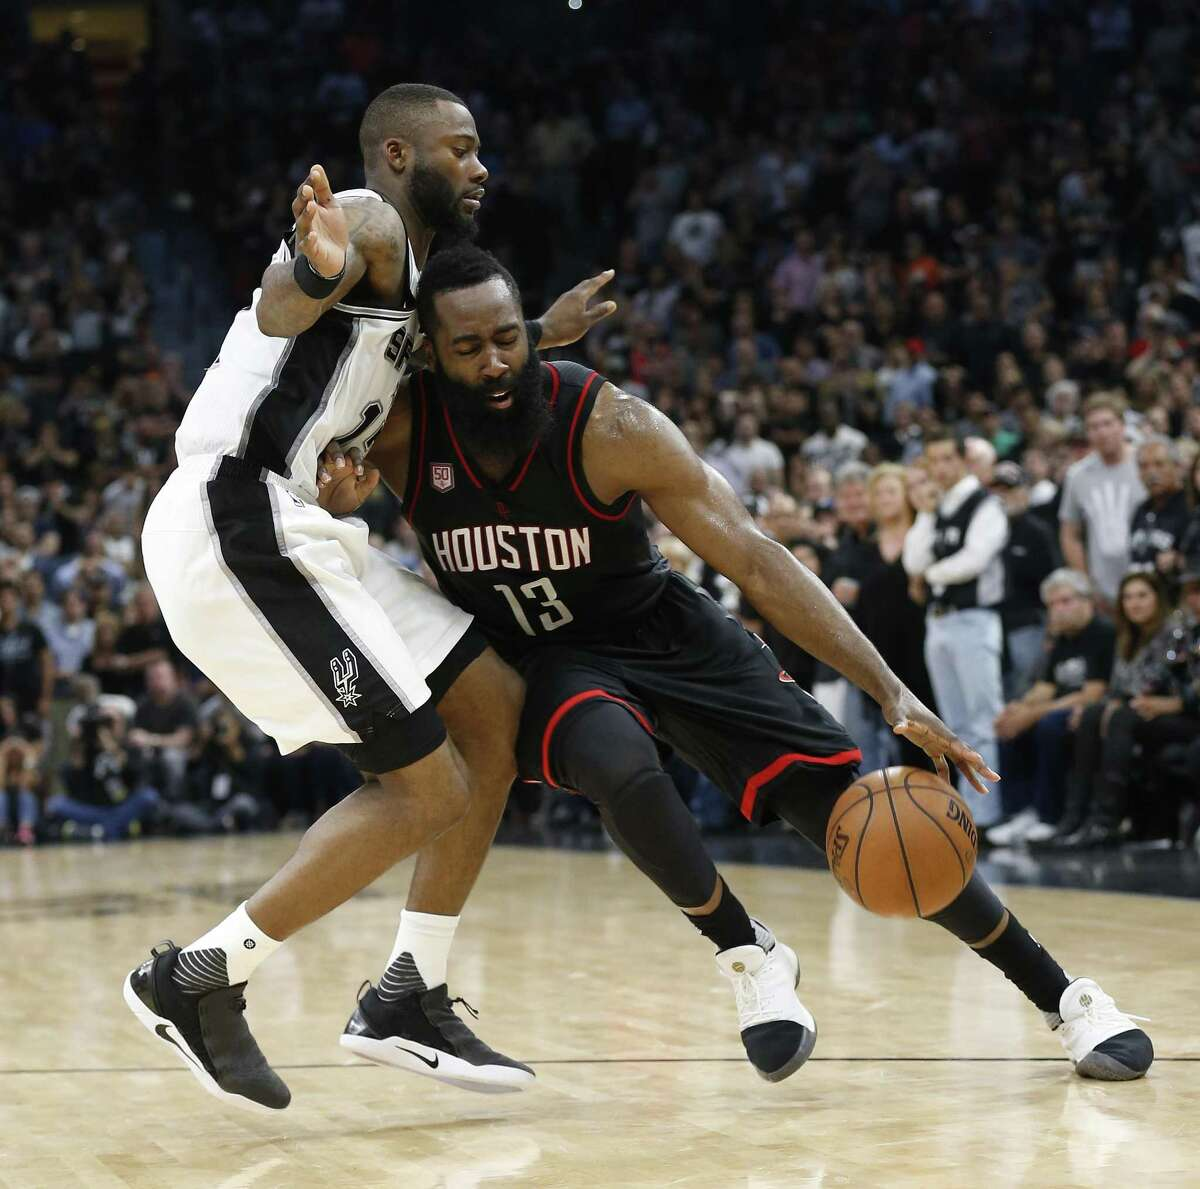 Spurs' Jonathon Simmons draws a charging fould against the Rockets' James Harden during Game 5 at the AT&T Center on May 9, 2017.